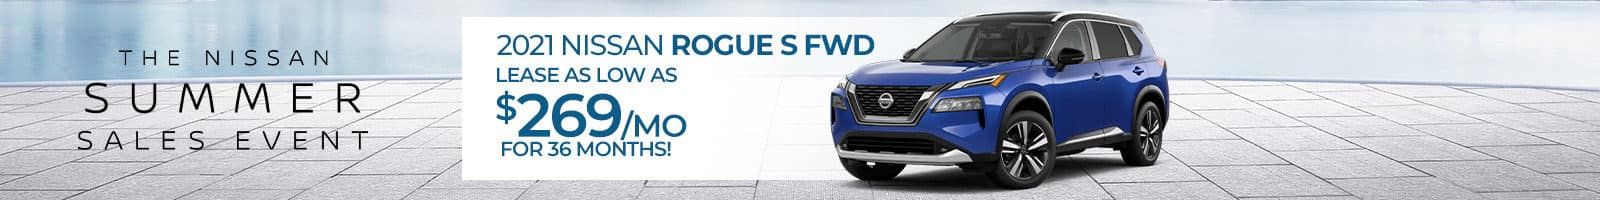 Special lease offer on a new 2021 Nissan Rogue near near near New Albany, Indiana